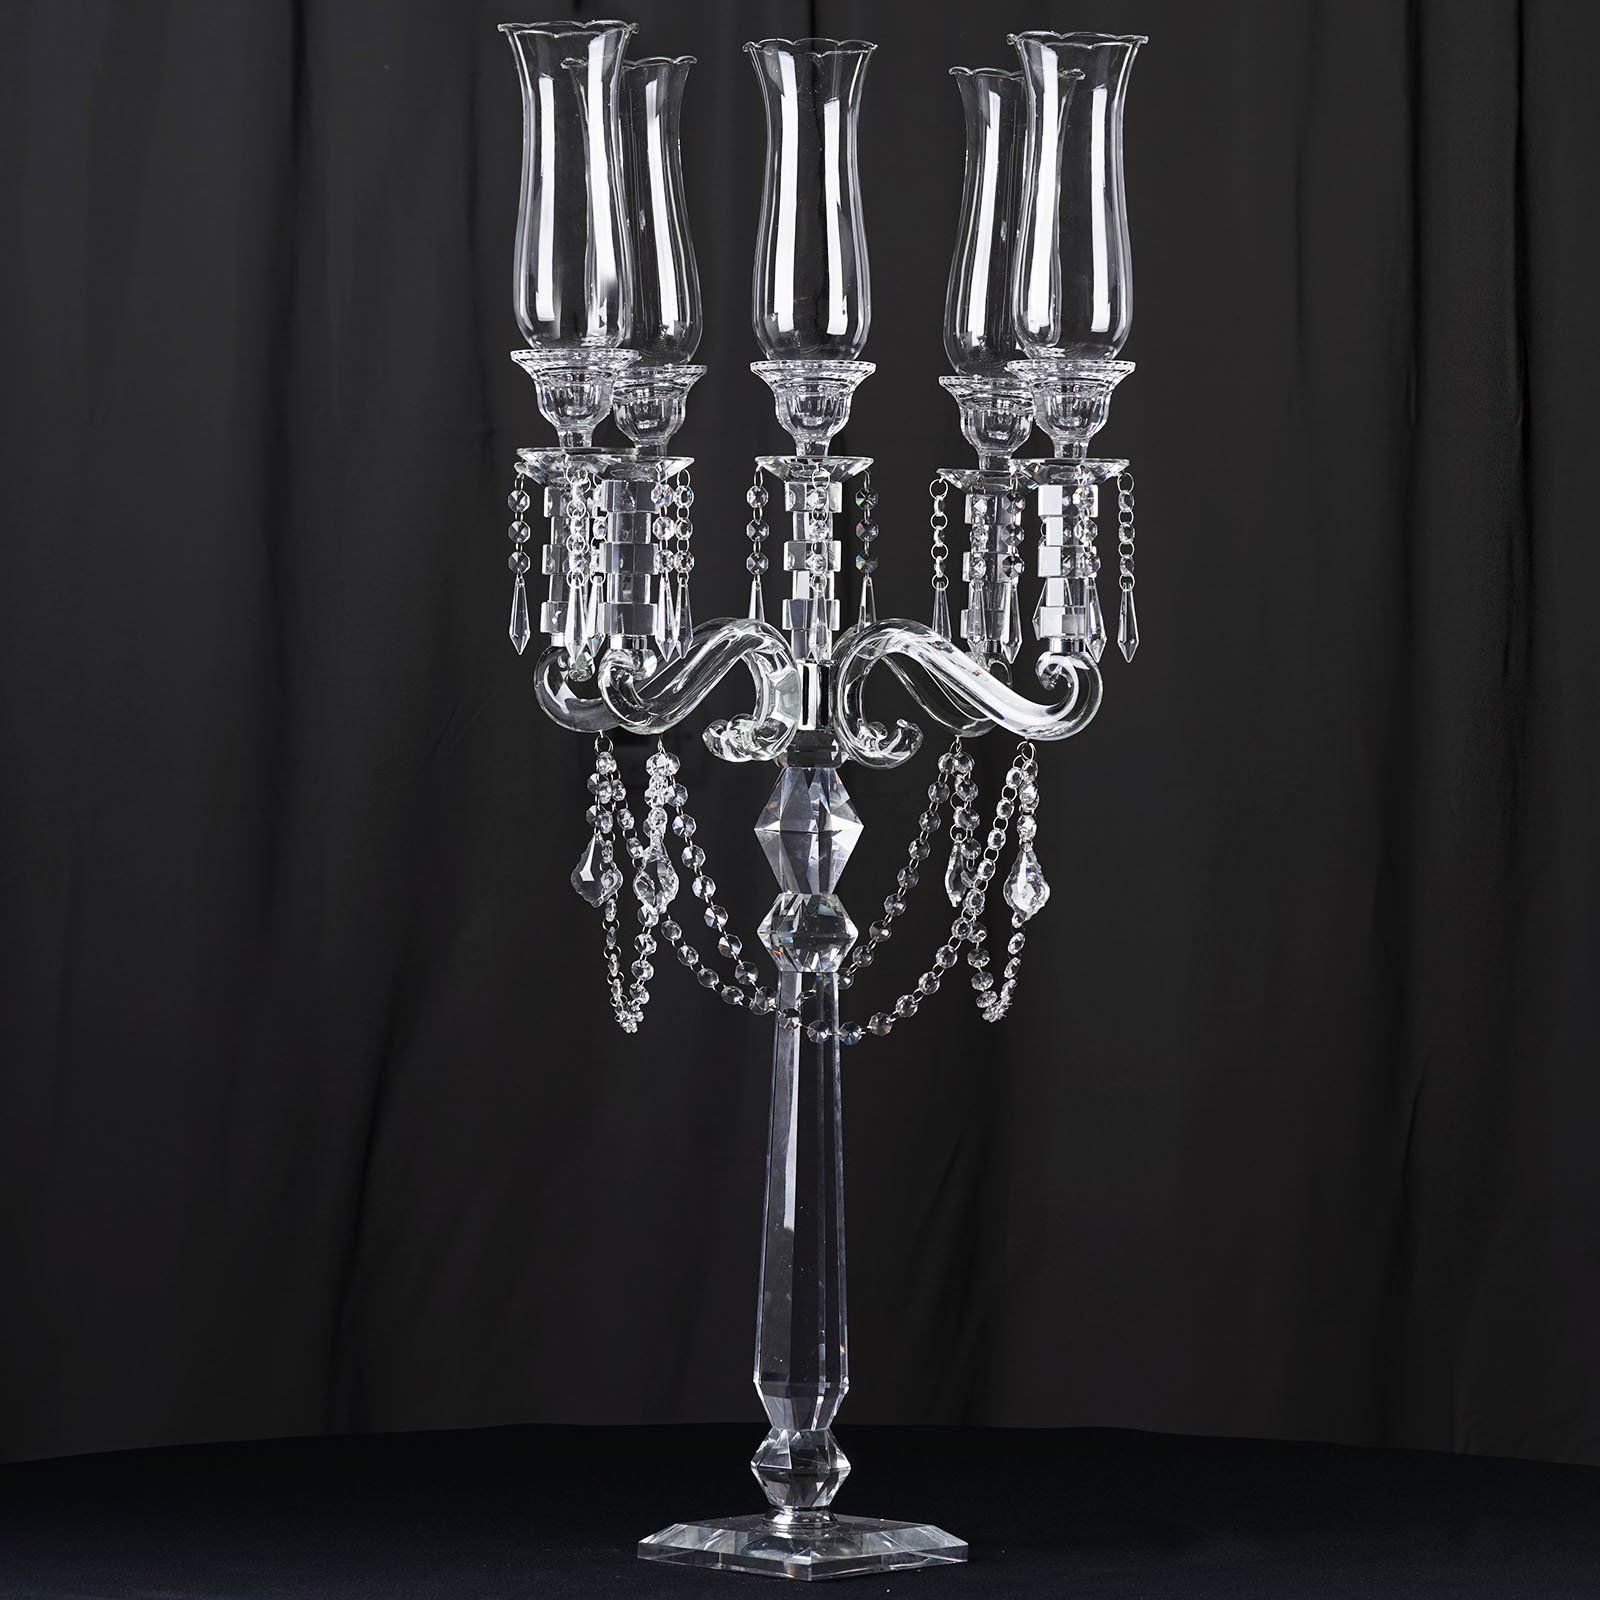 39 Tall 5 Arm Premium Hurricane Taper Crystal Glass Candle Holder Glass Candle Holders Candleholder Centerpieces Taper Candle Holders